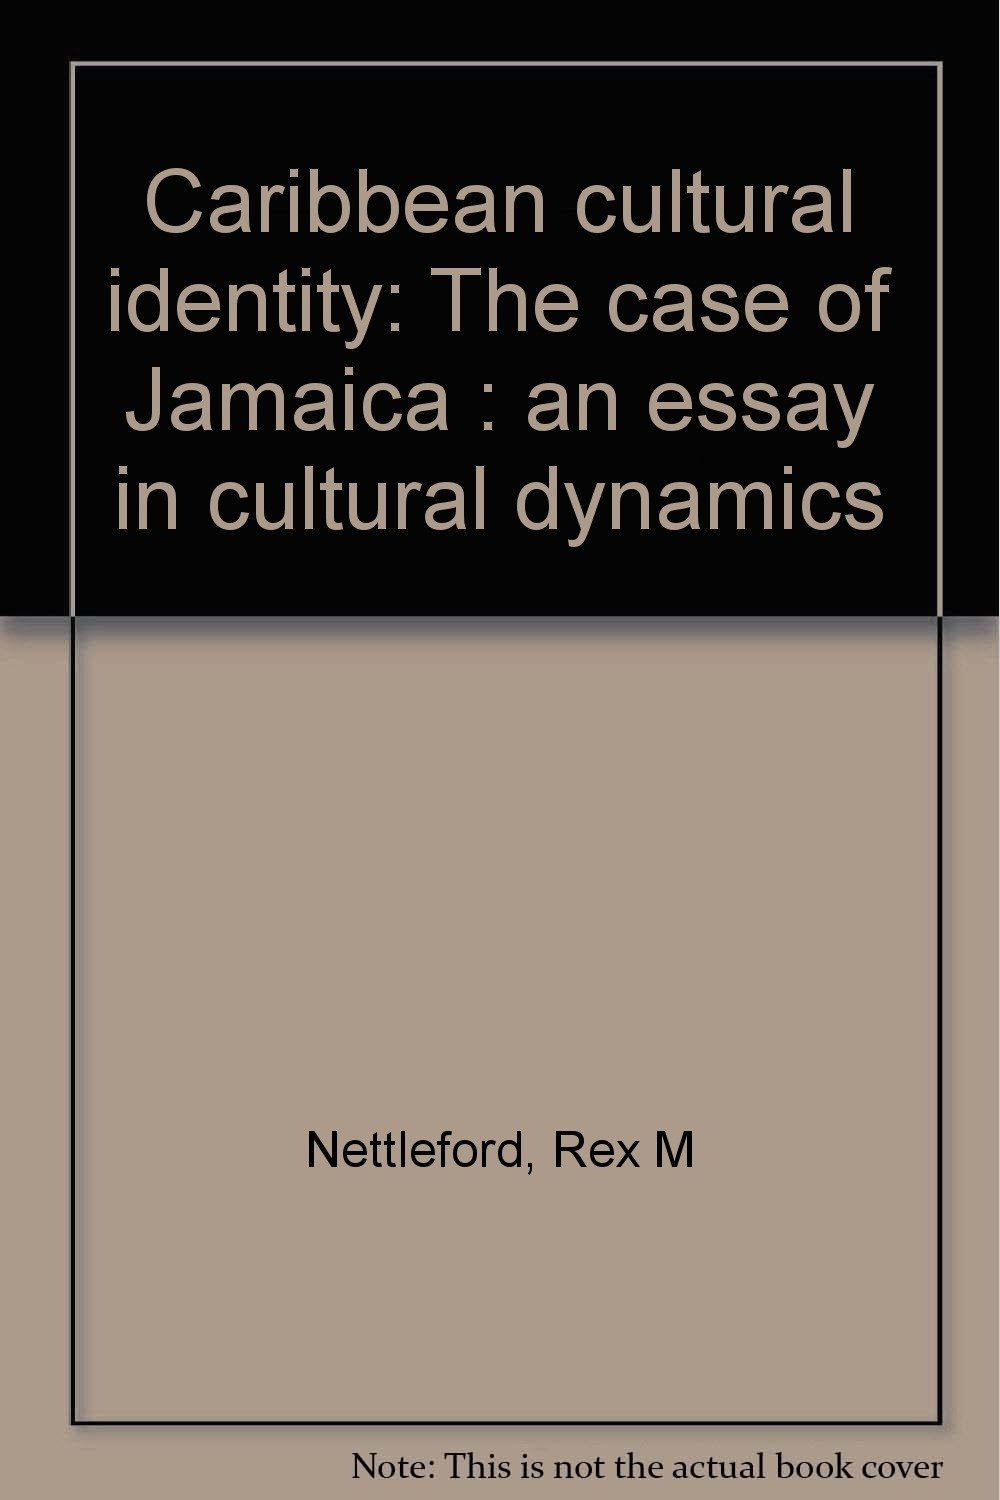 Autobiography Essay Sample Caribbean Cultural Identity The Case Of Jamaica An Essay In Cultural  Dynamics Rex M Nettleford Amazoncom Books Essay William Shakespeare also Essays On Role Models Caribbean Cultural Identity The Case Of Jamaica An Essay In  Marijuana Should Be Legalized Essay